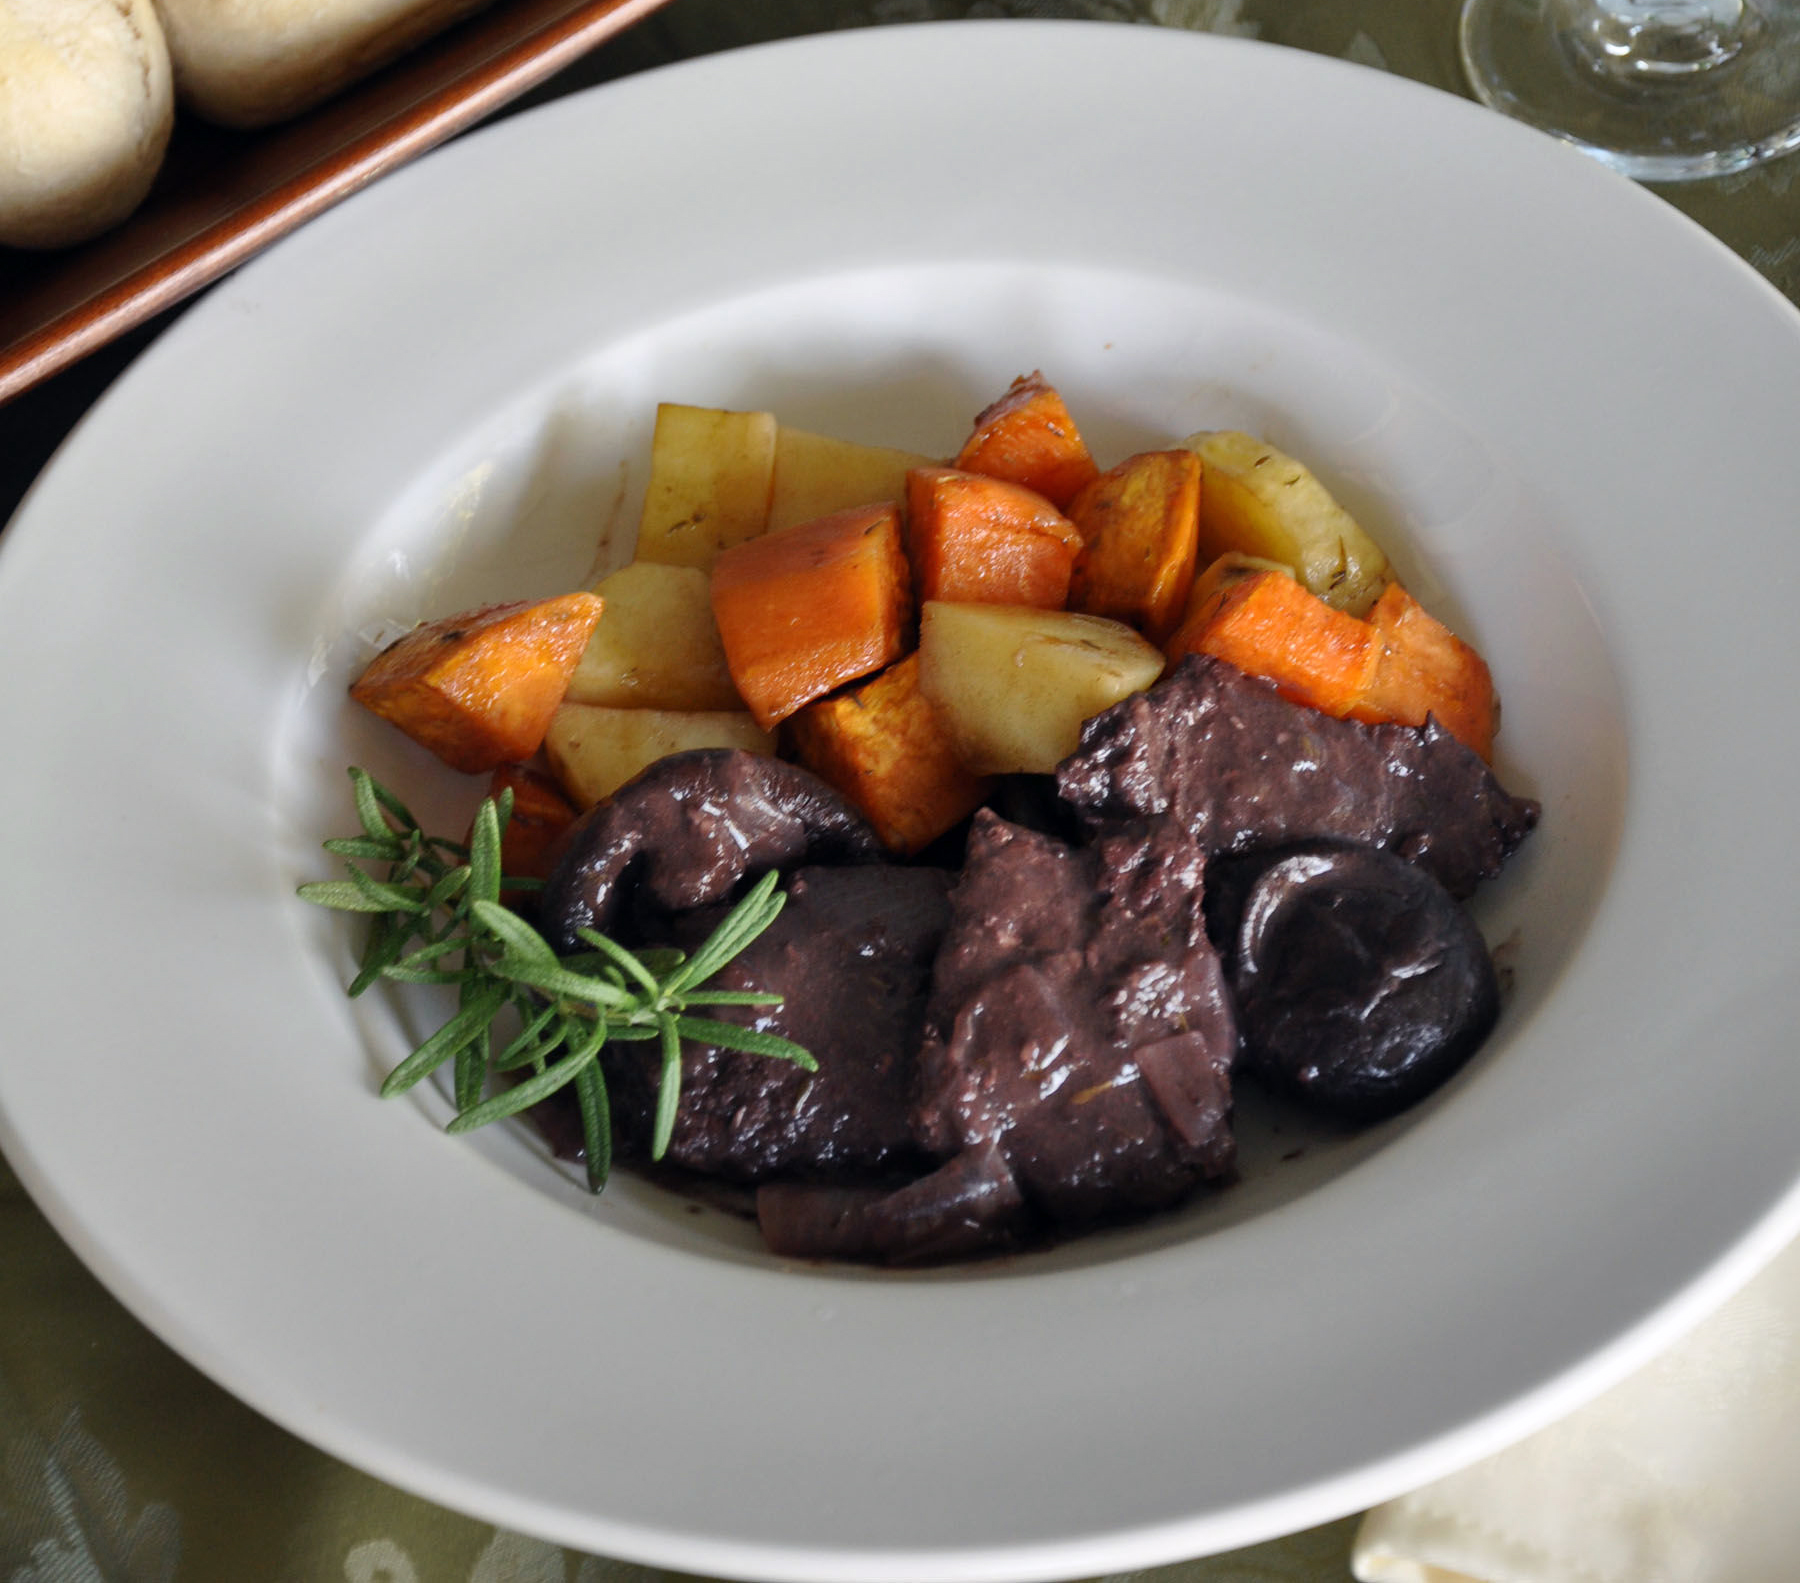 Braised Venison with Rosemary and Shiitake RUTHWARD